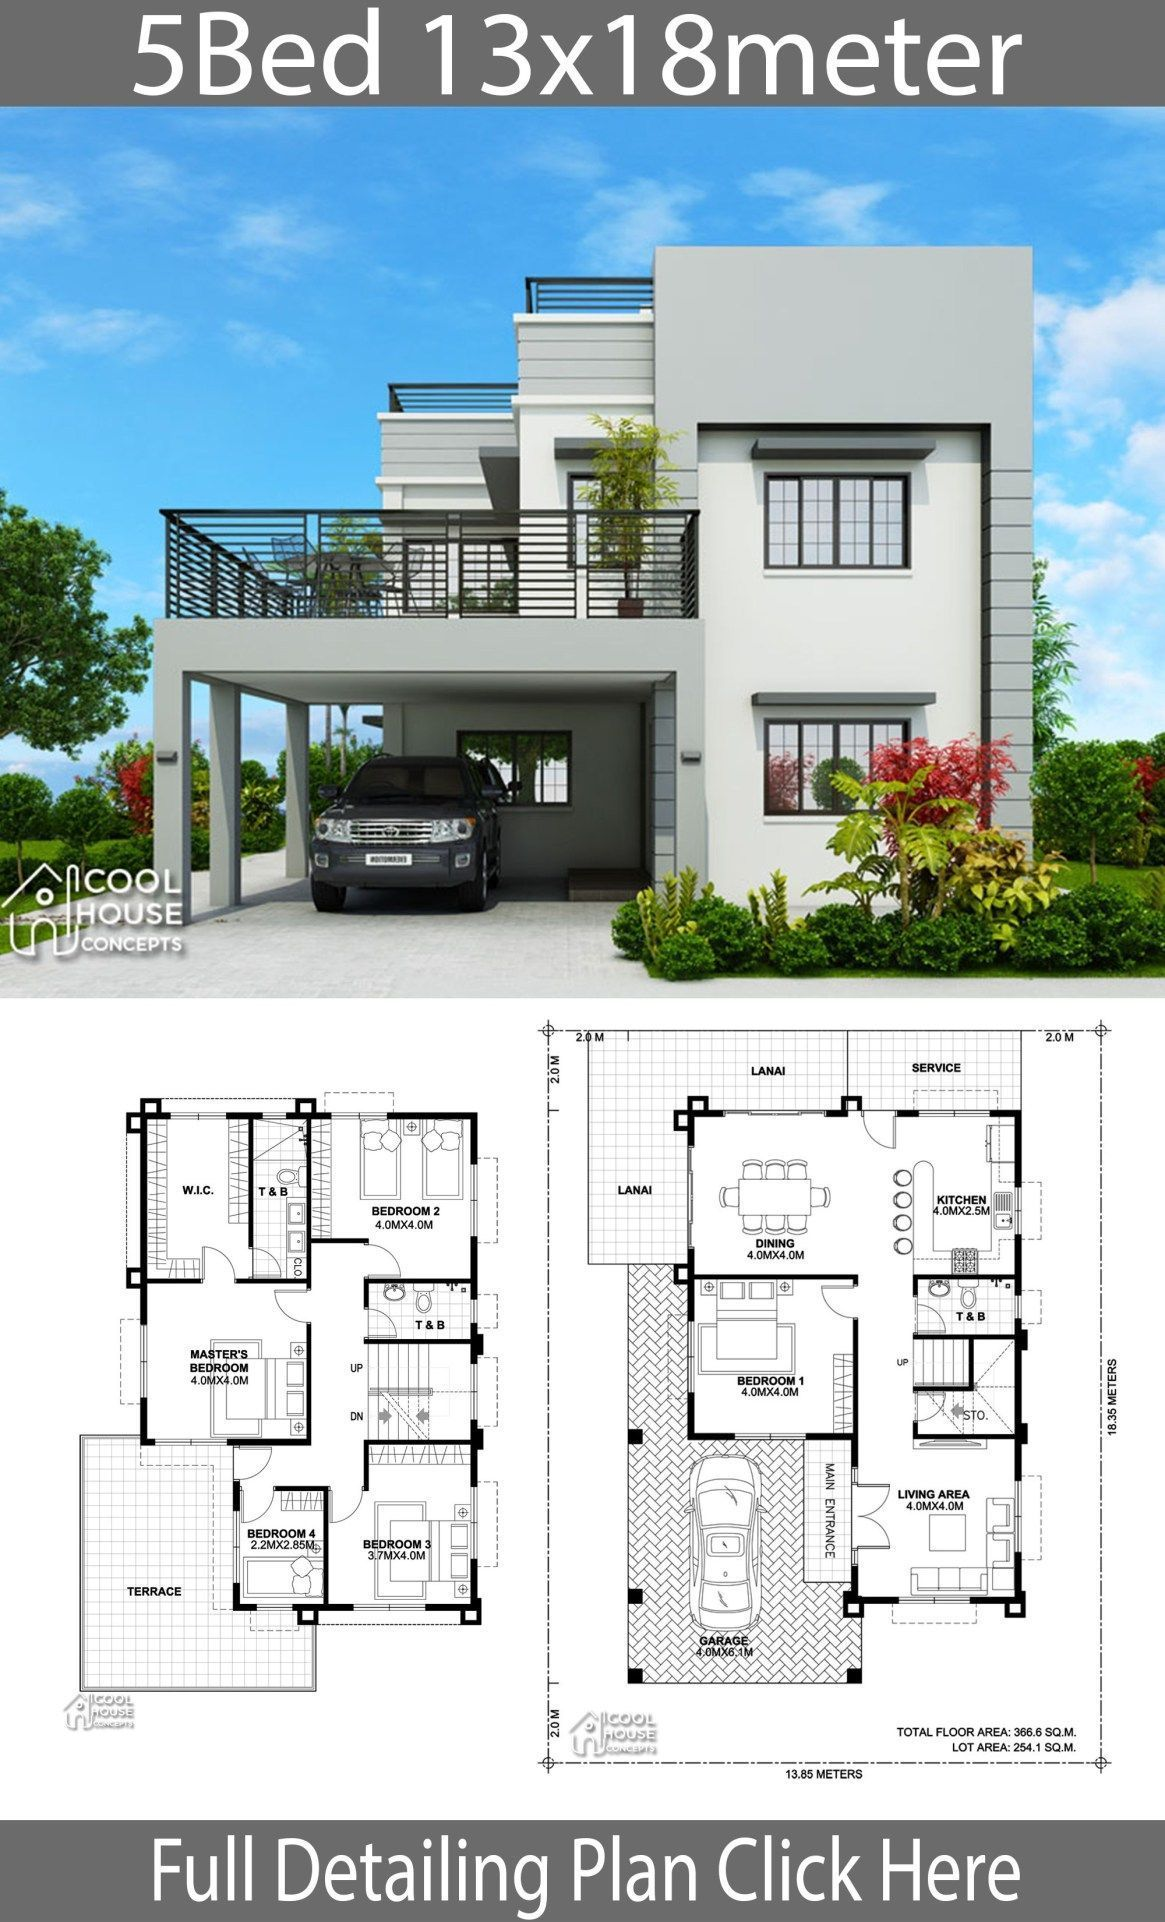 Home Design Plan 13x18m With 5 Bedrooms Home Ideas 13x18m Bedrooms Design Home Ideas Plan House Construction Plan House Plans Mansion House Layouts